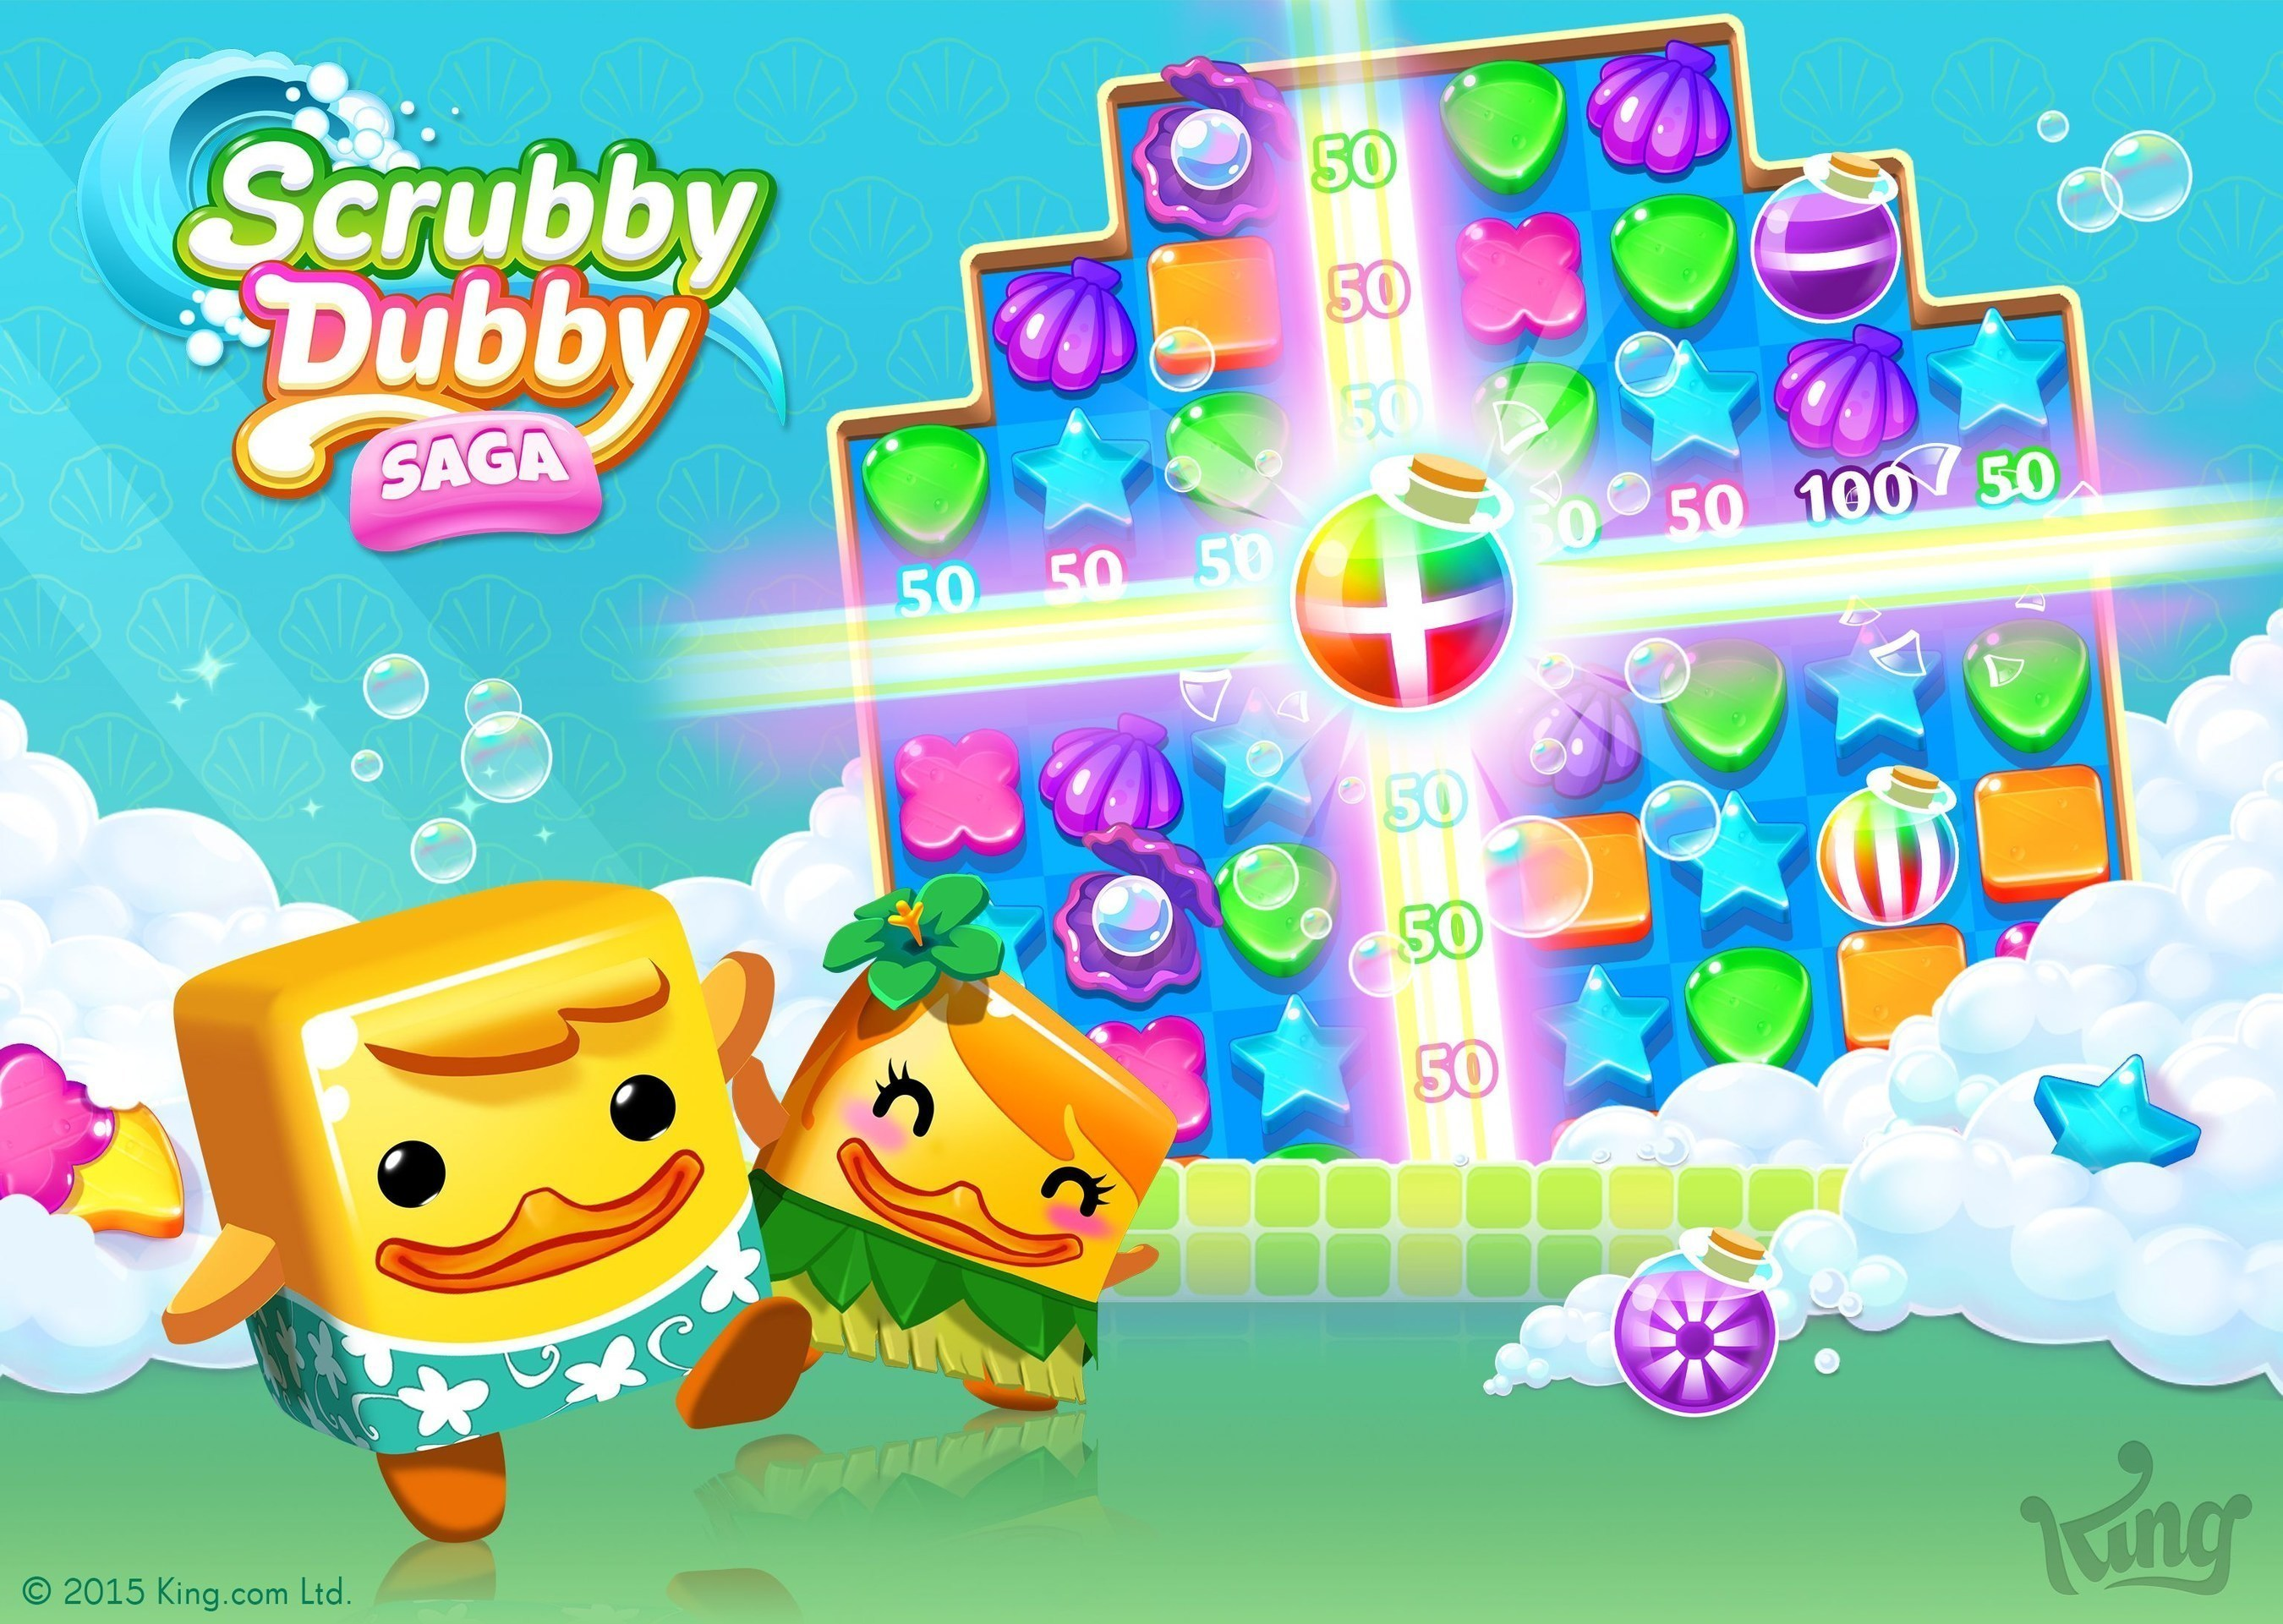 Be a Soap Star! Scrubby Dubby Saga Launches on Mobile